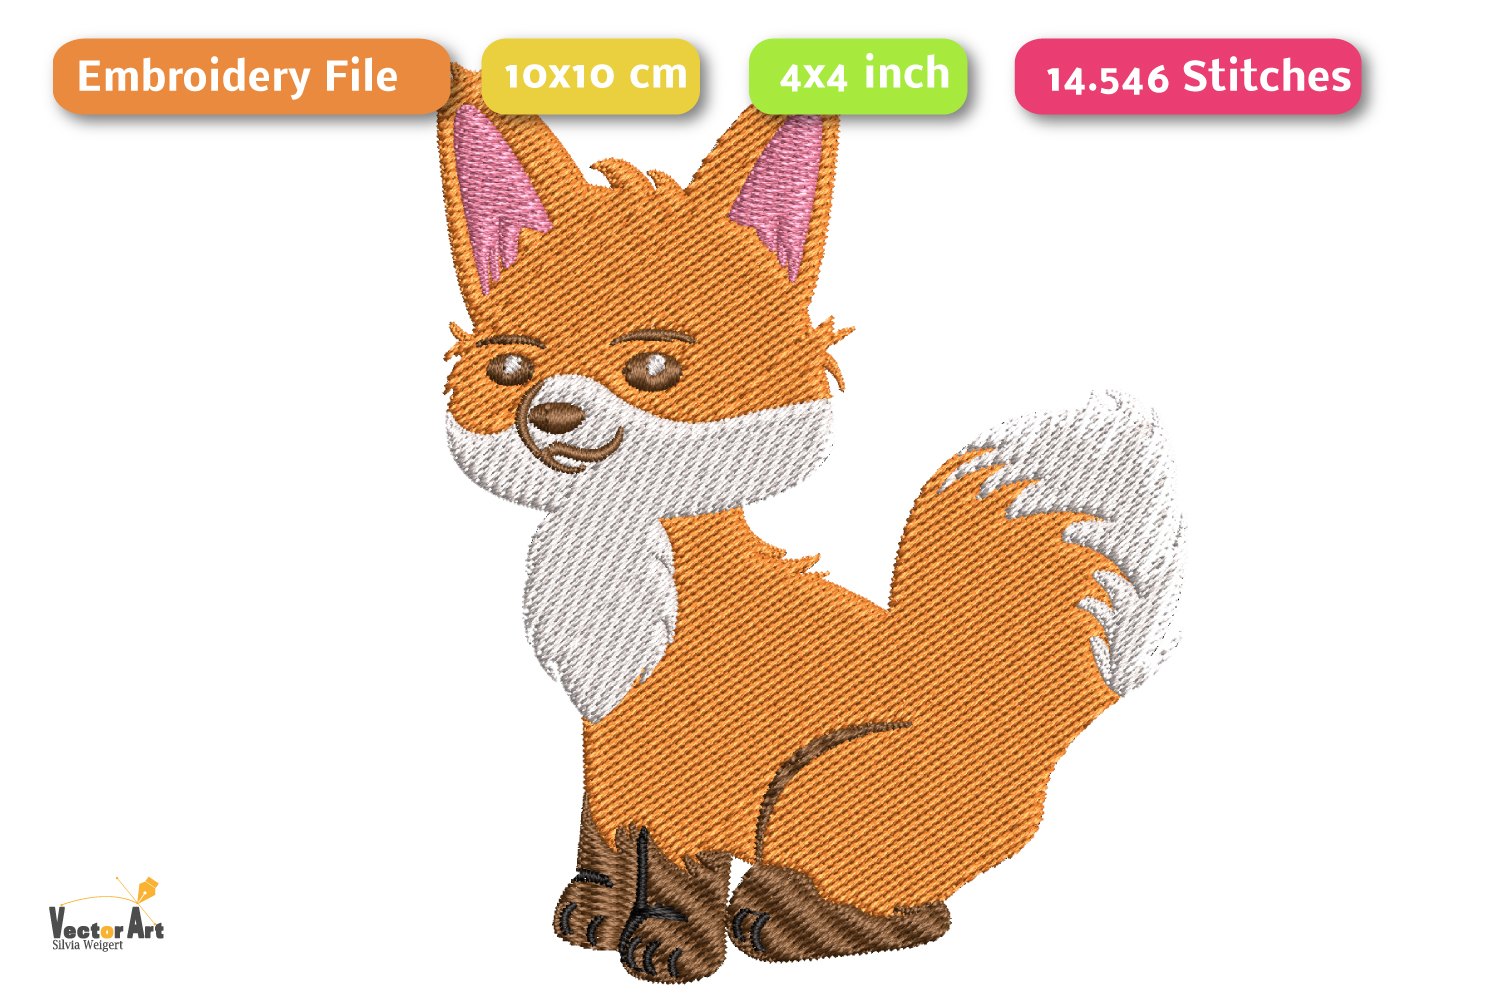 Fox - Embroidery File - 4x4 inch example image 2